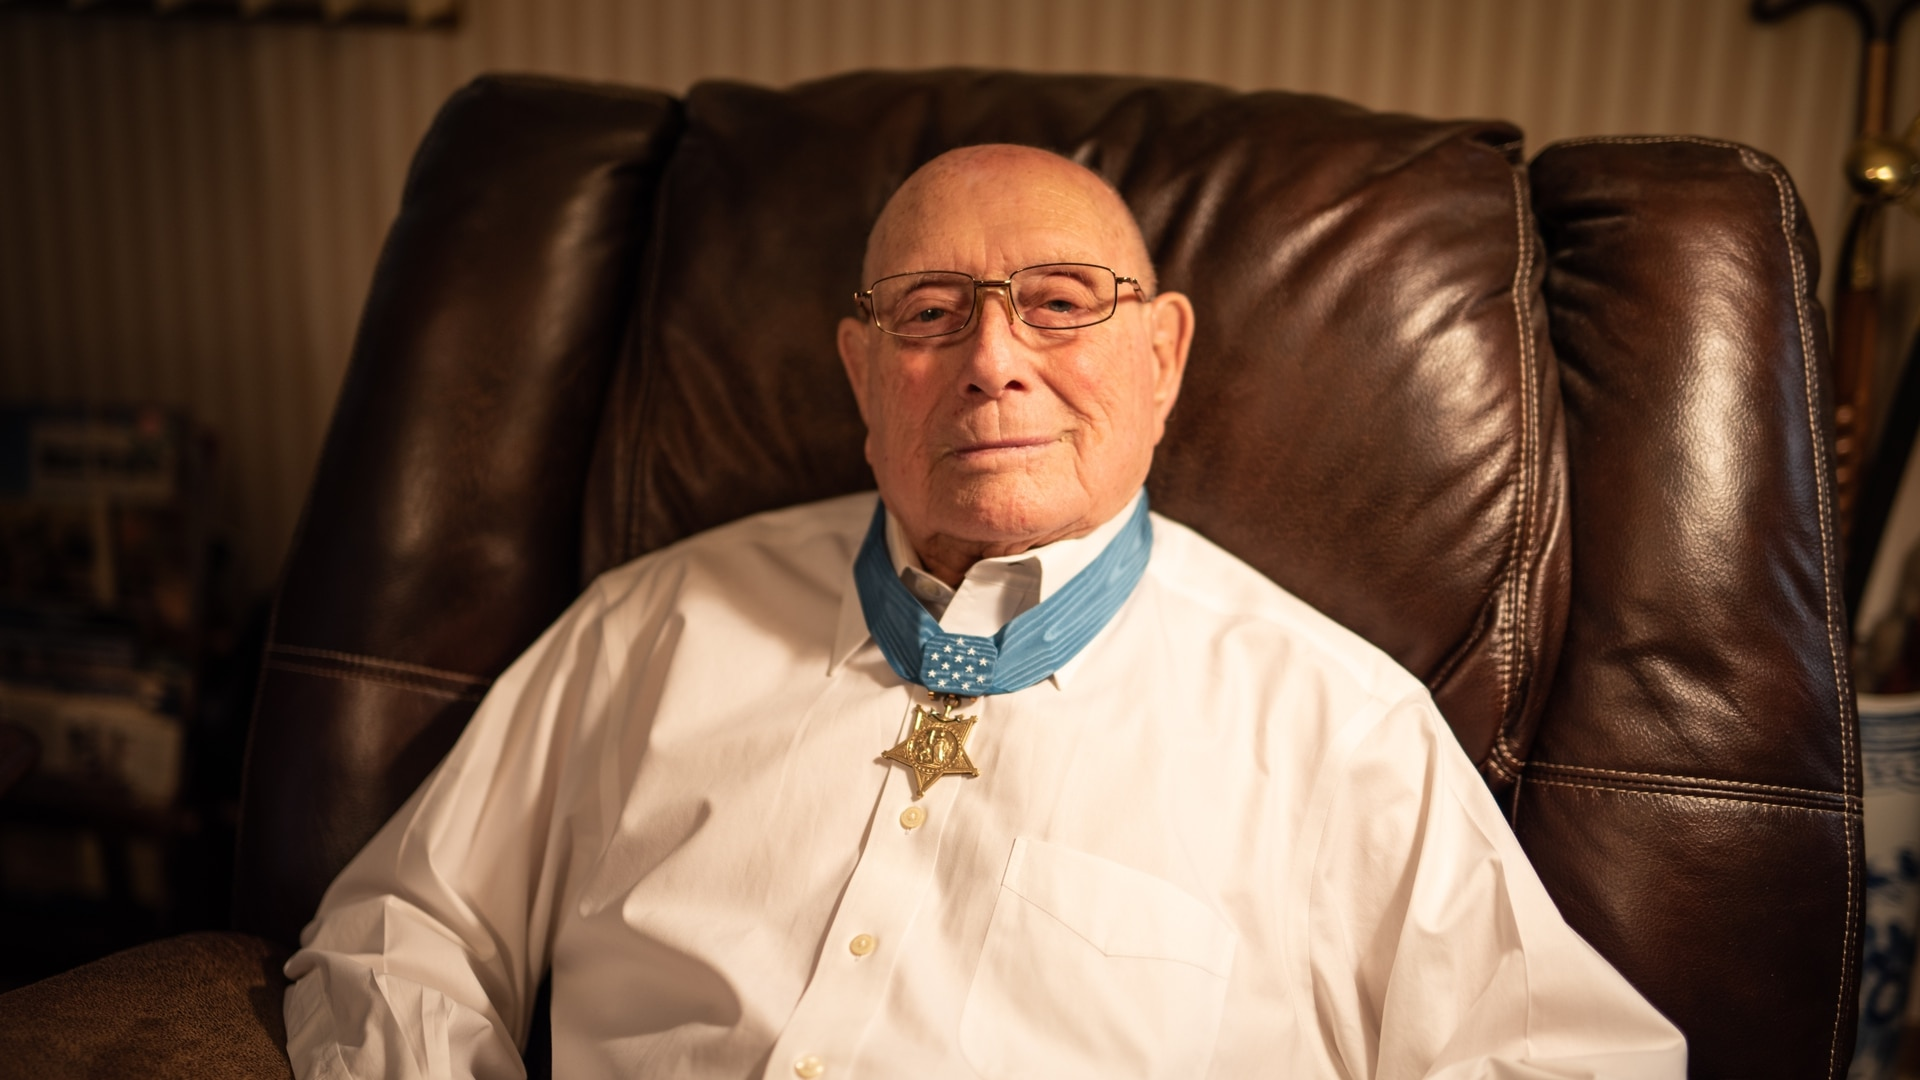 Hershel 'Woody' Williams, 96, wearing the Medal of Honor he received for his actions on Iwo Jima 75 years ago. (J.D. Simkins/Staff)